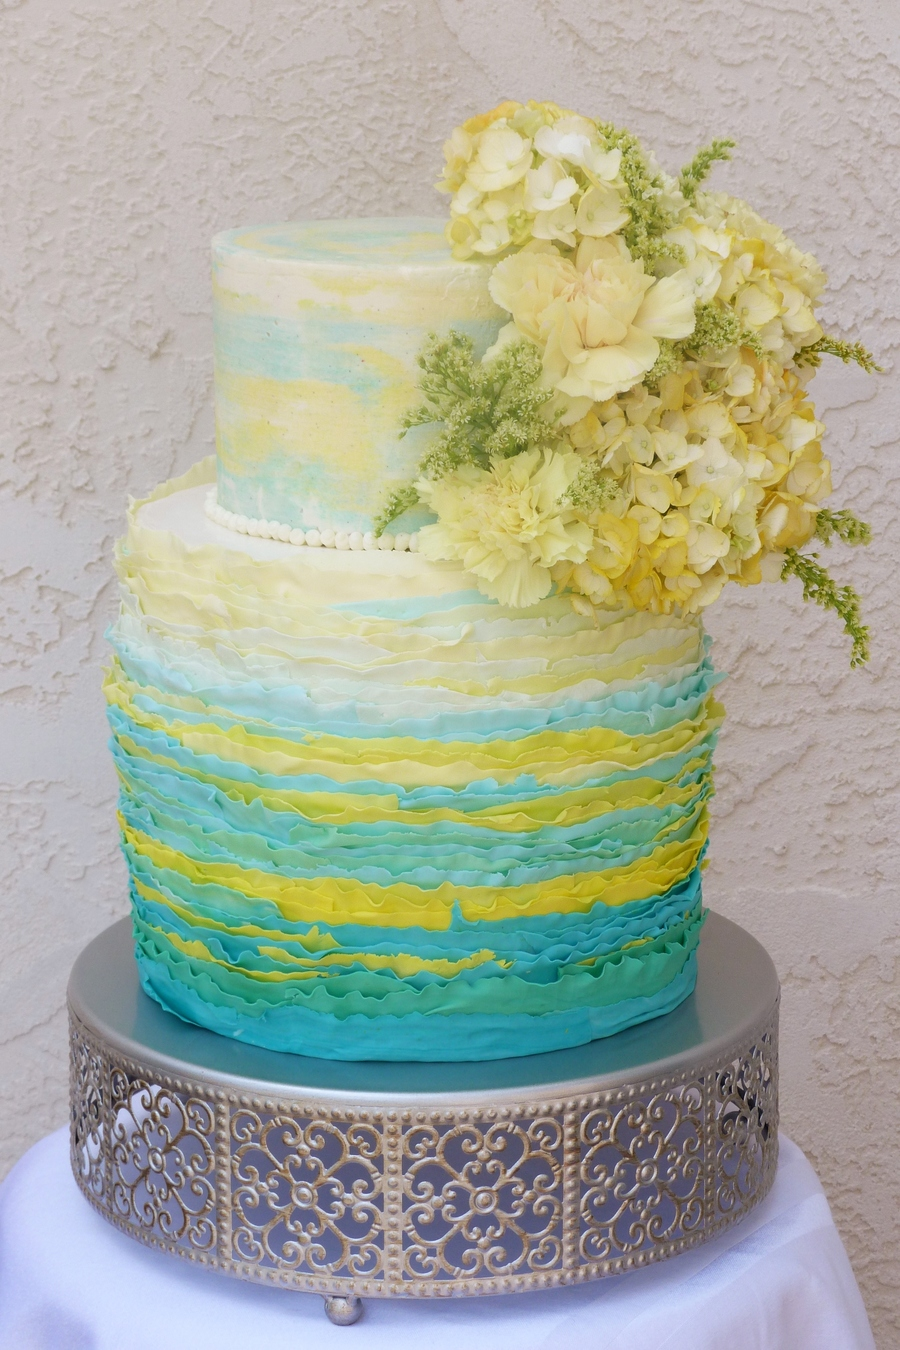 Ruffle And Buttercream Cake In Yellow And Teal With Fresh Flowers ...